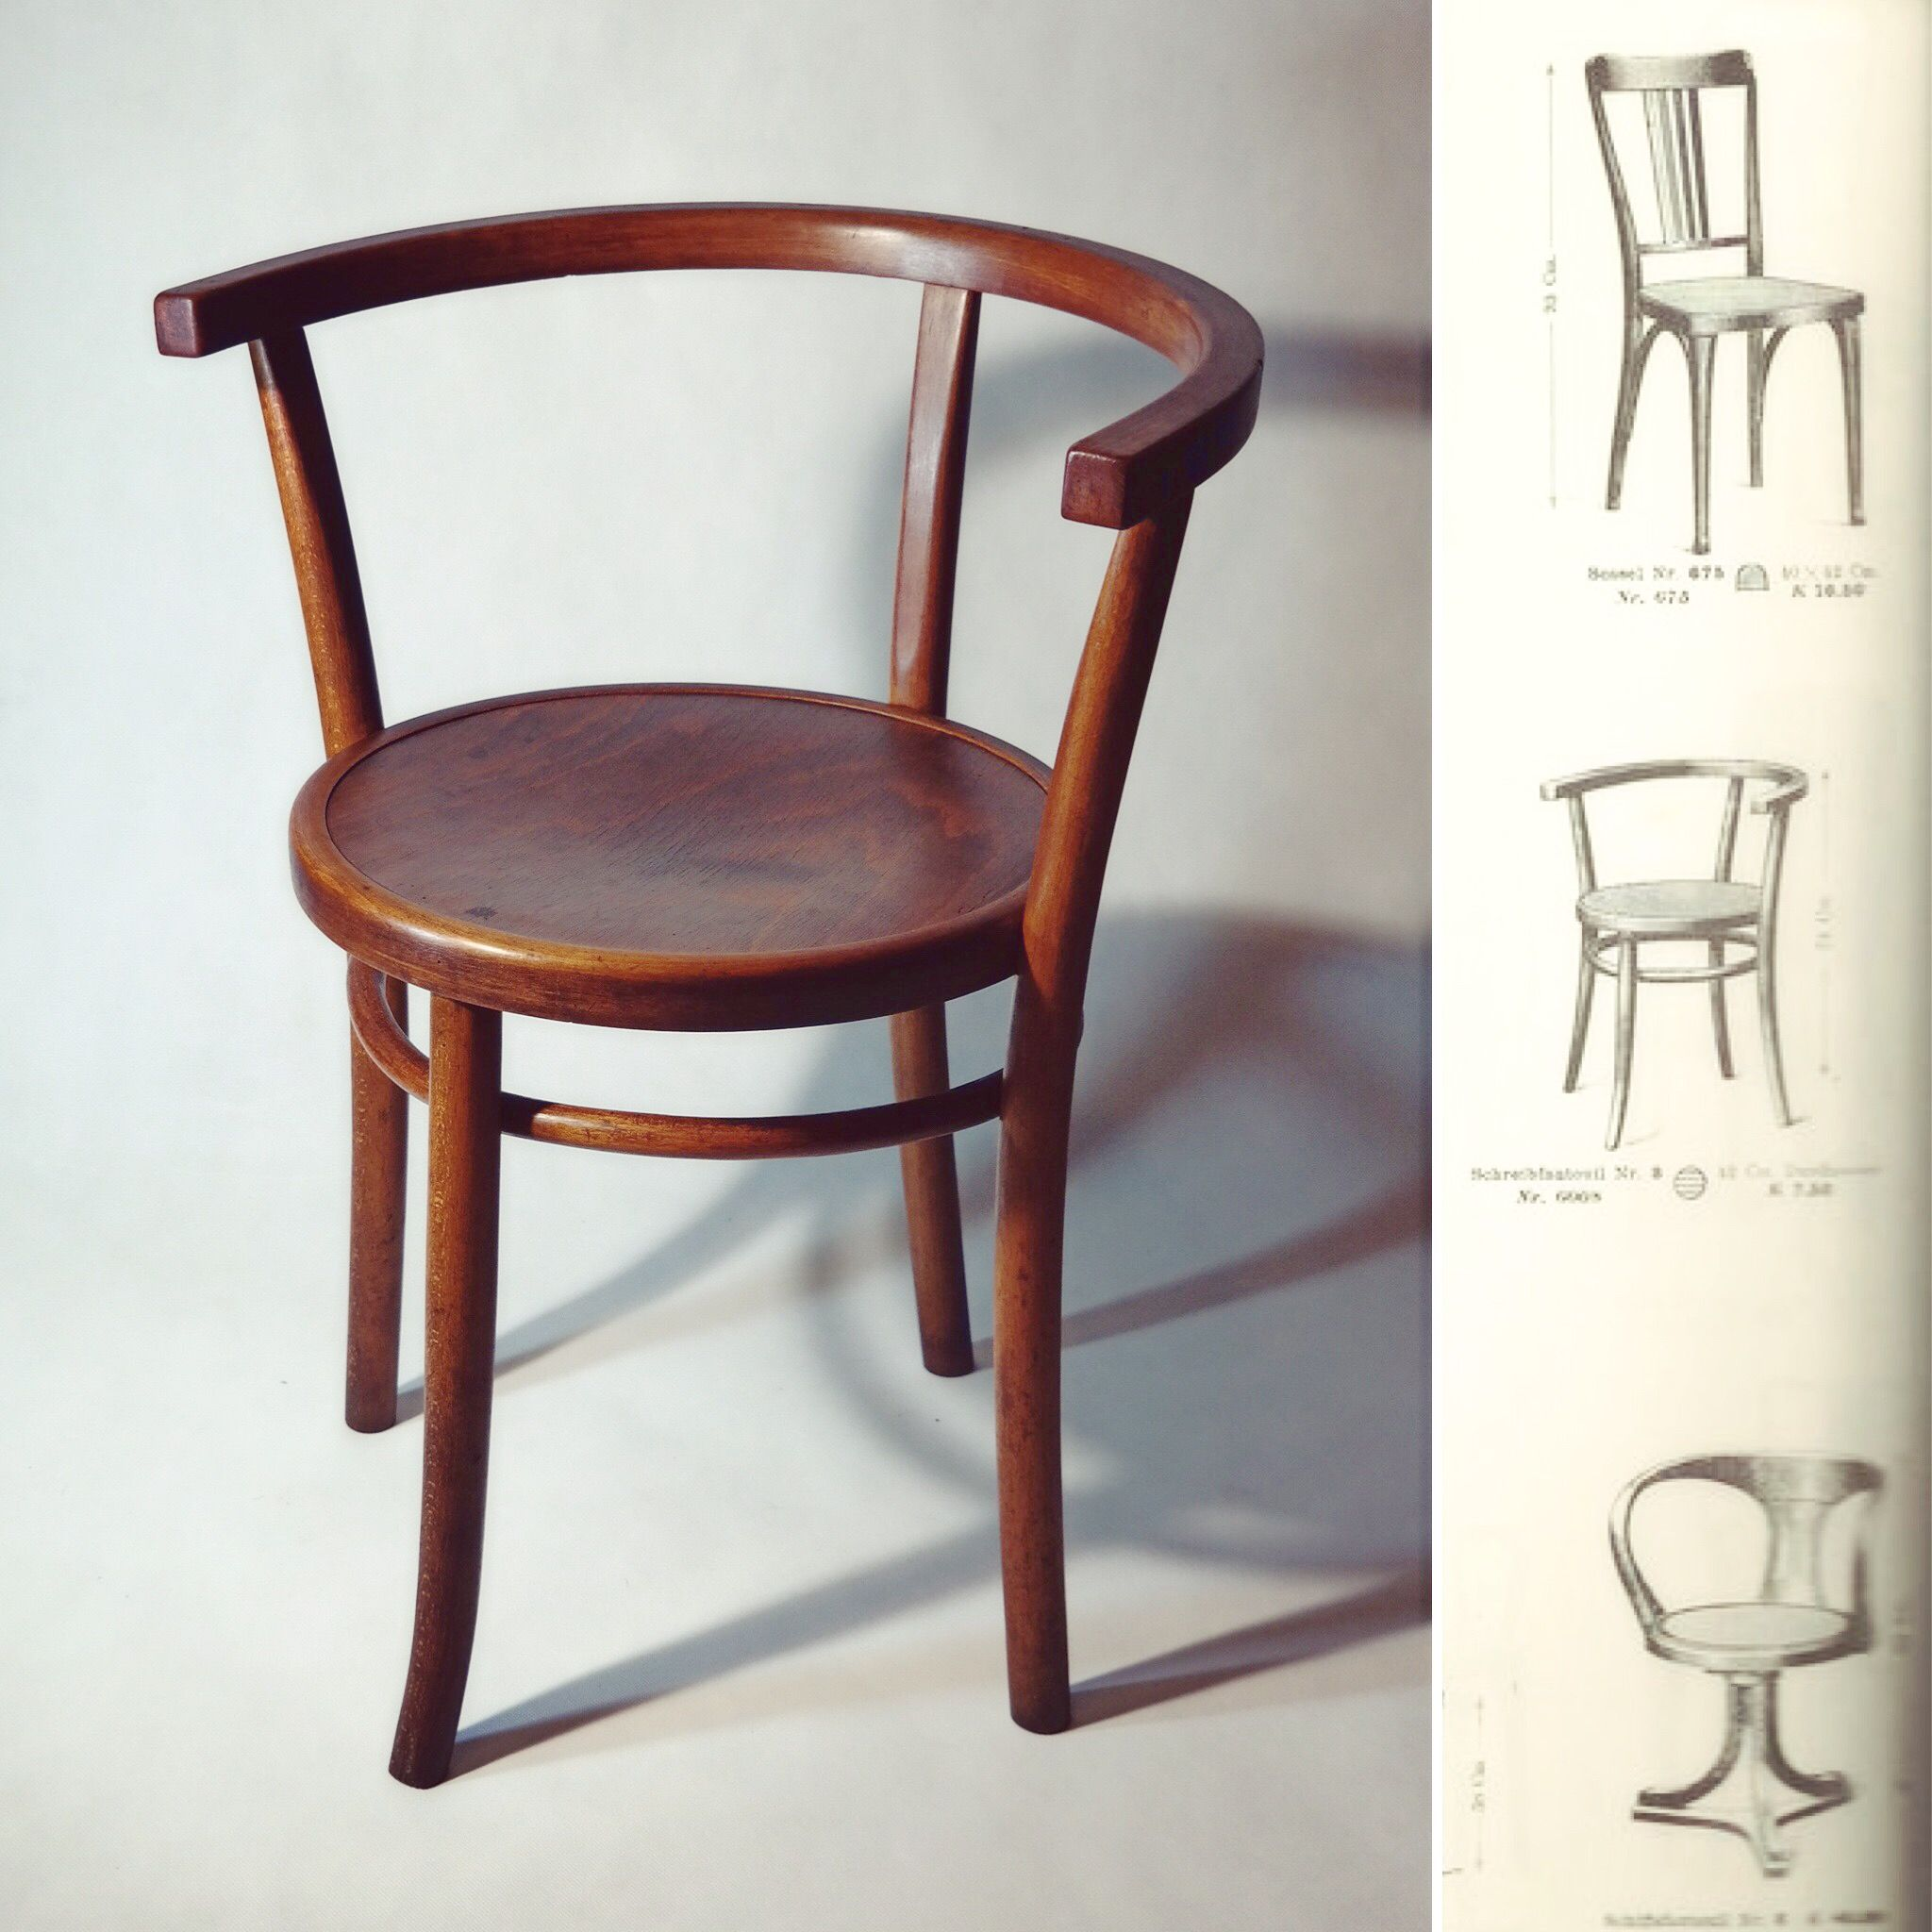 Vintage thonet style cafe chairs with stenciled seats - Thonet Old Chair 1904